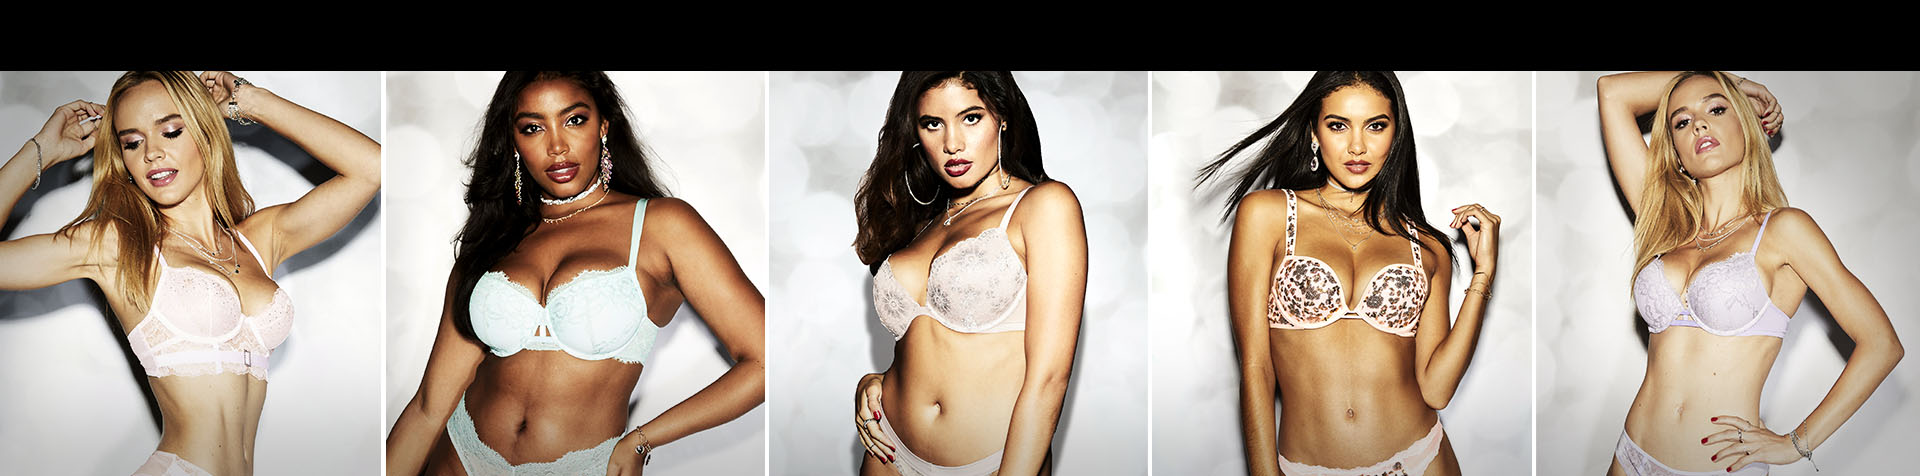 La Senza Bras. Unlined, Lightly lined, Ligh Push Up, Extreme Push up. Each one is featured on a model.